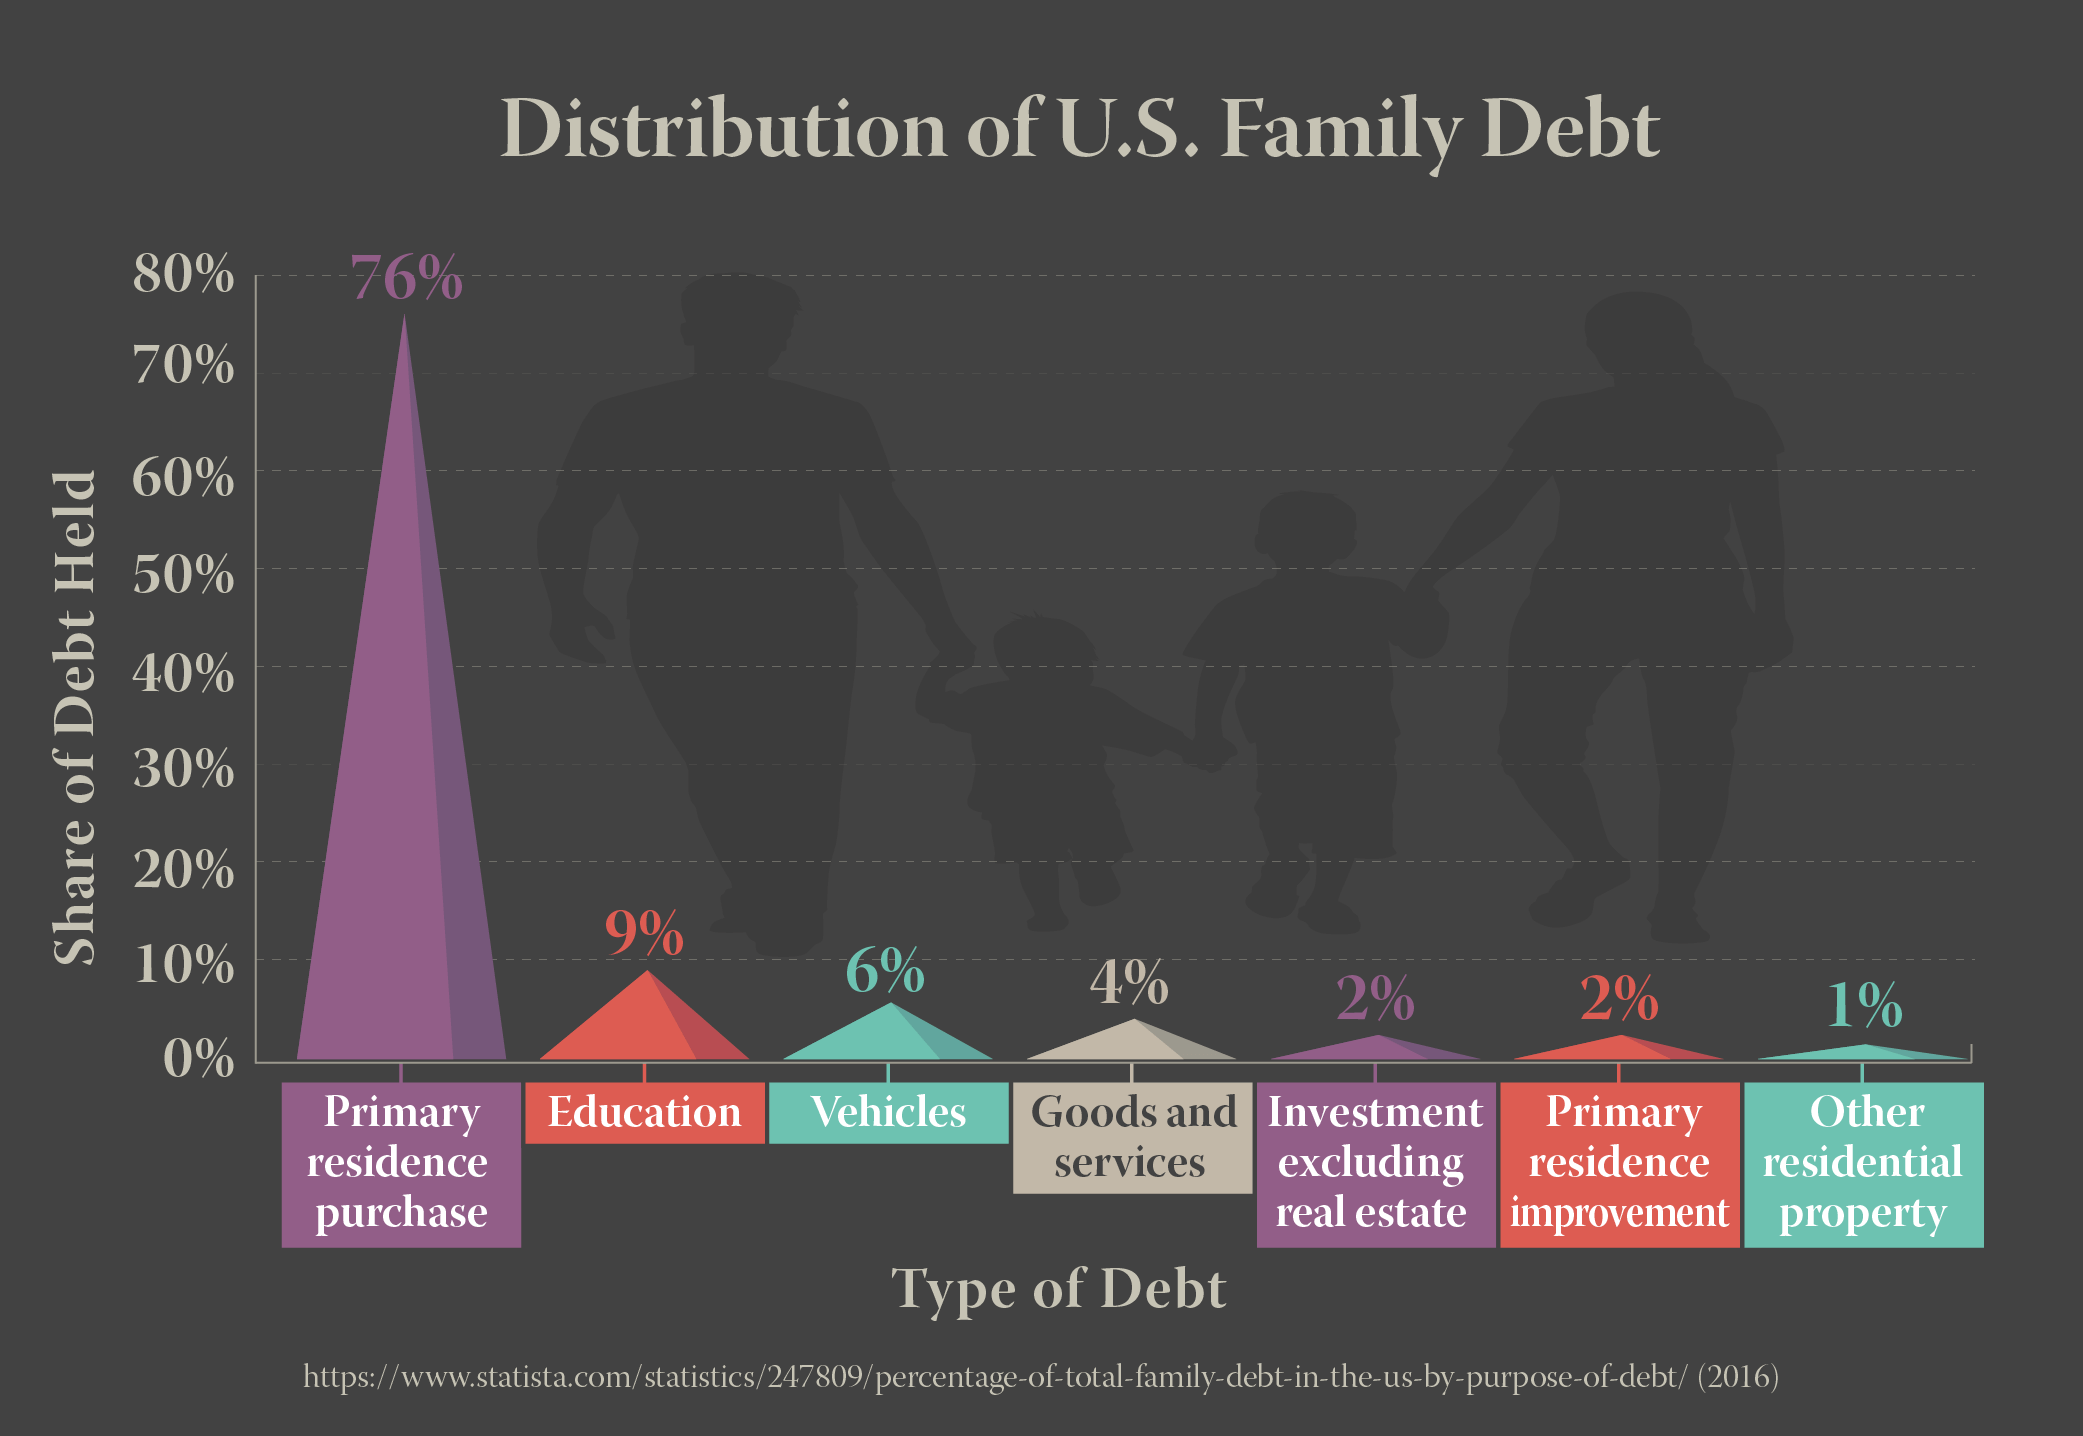 Distribution of U.S. Family Debt